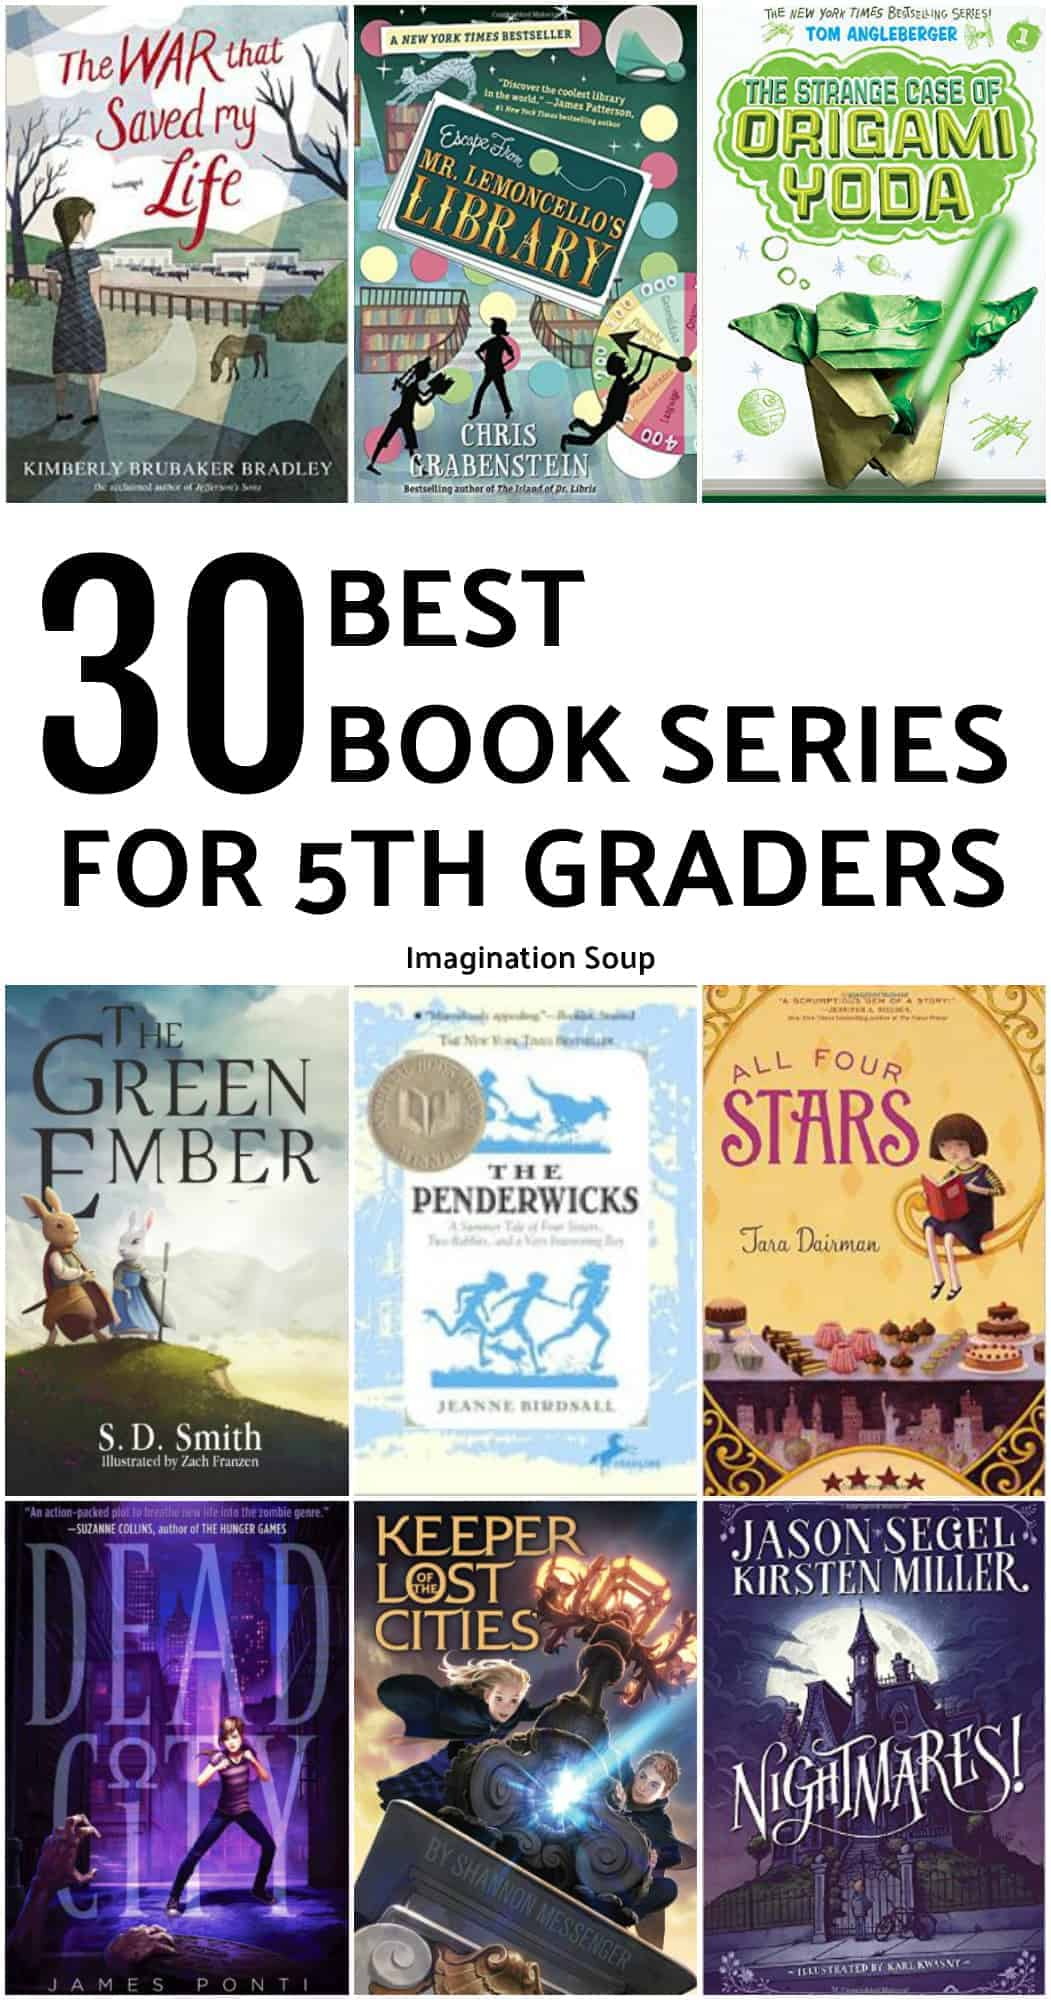 30 best book series for 5th graders